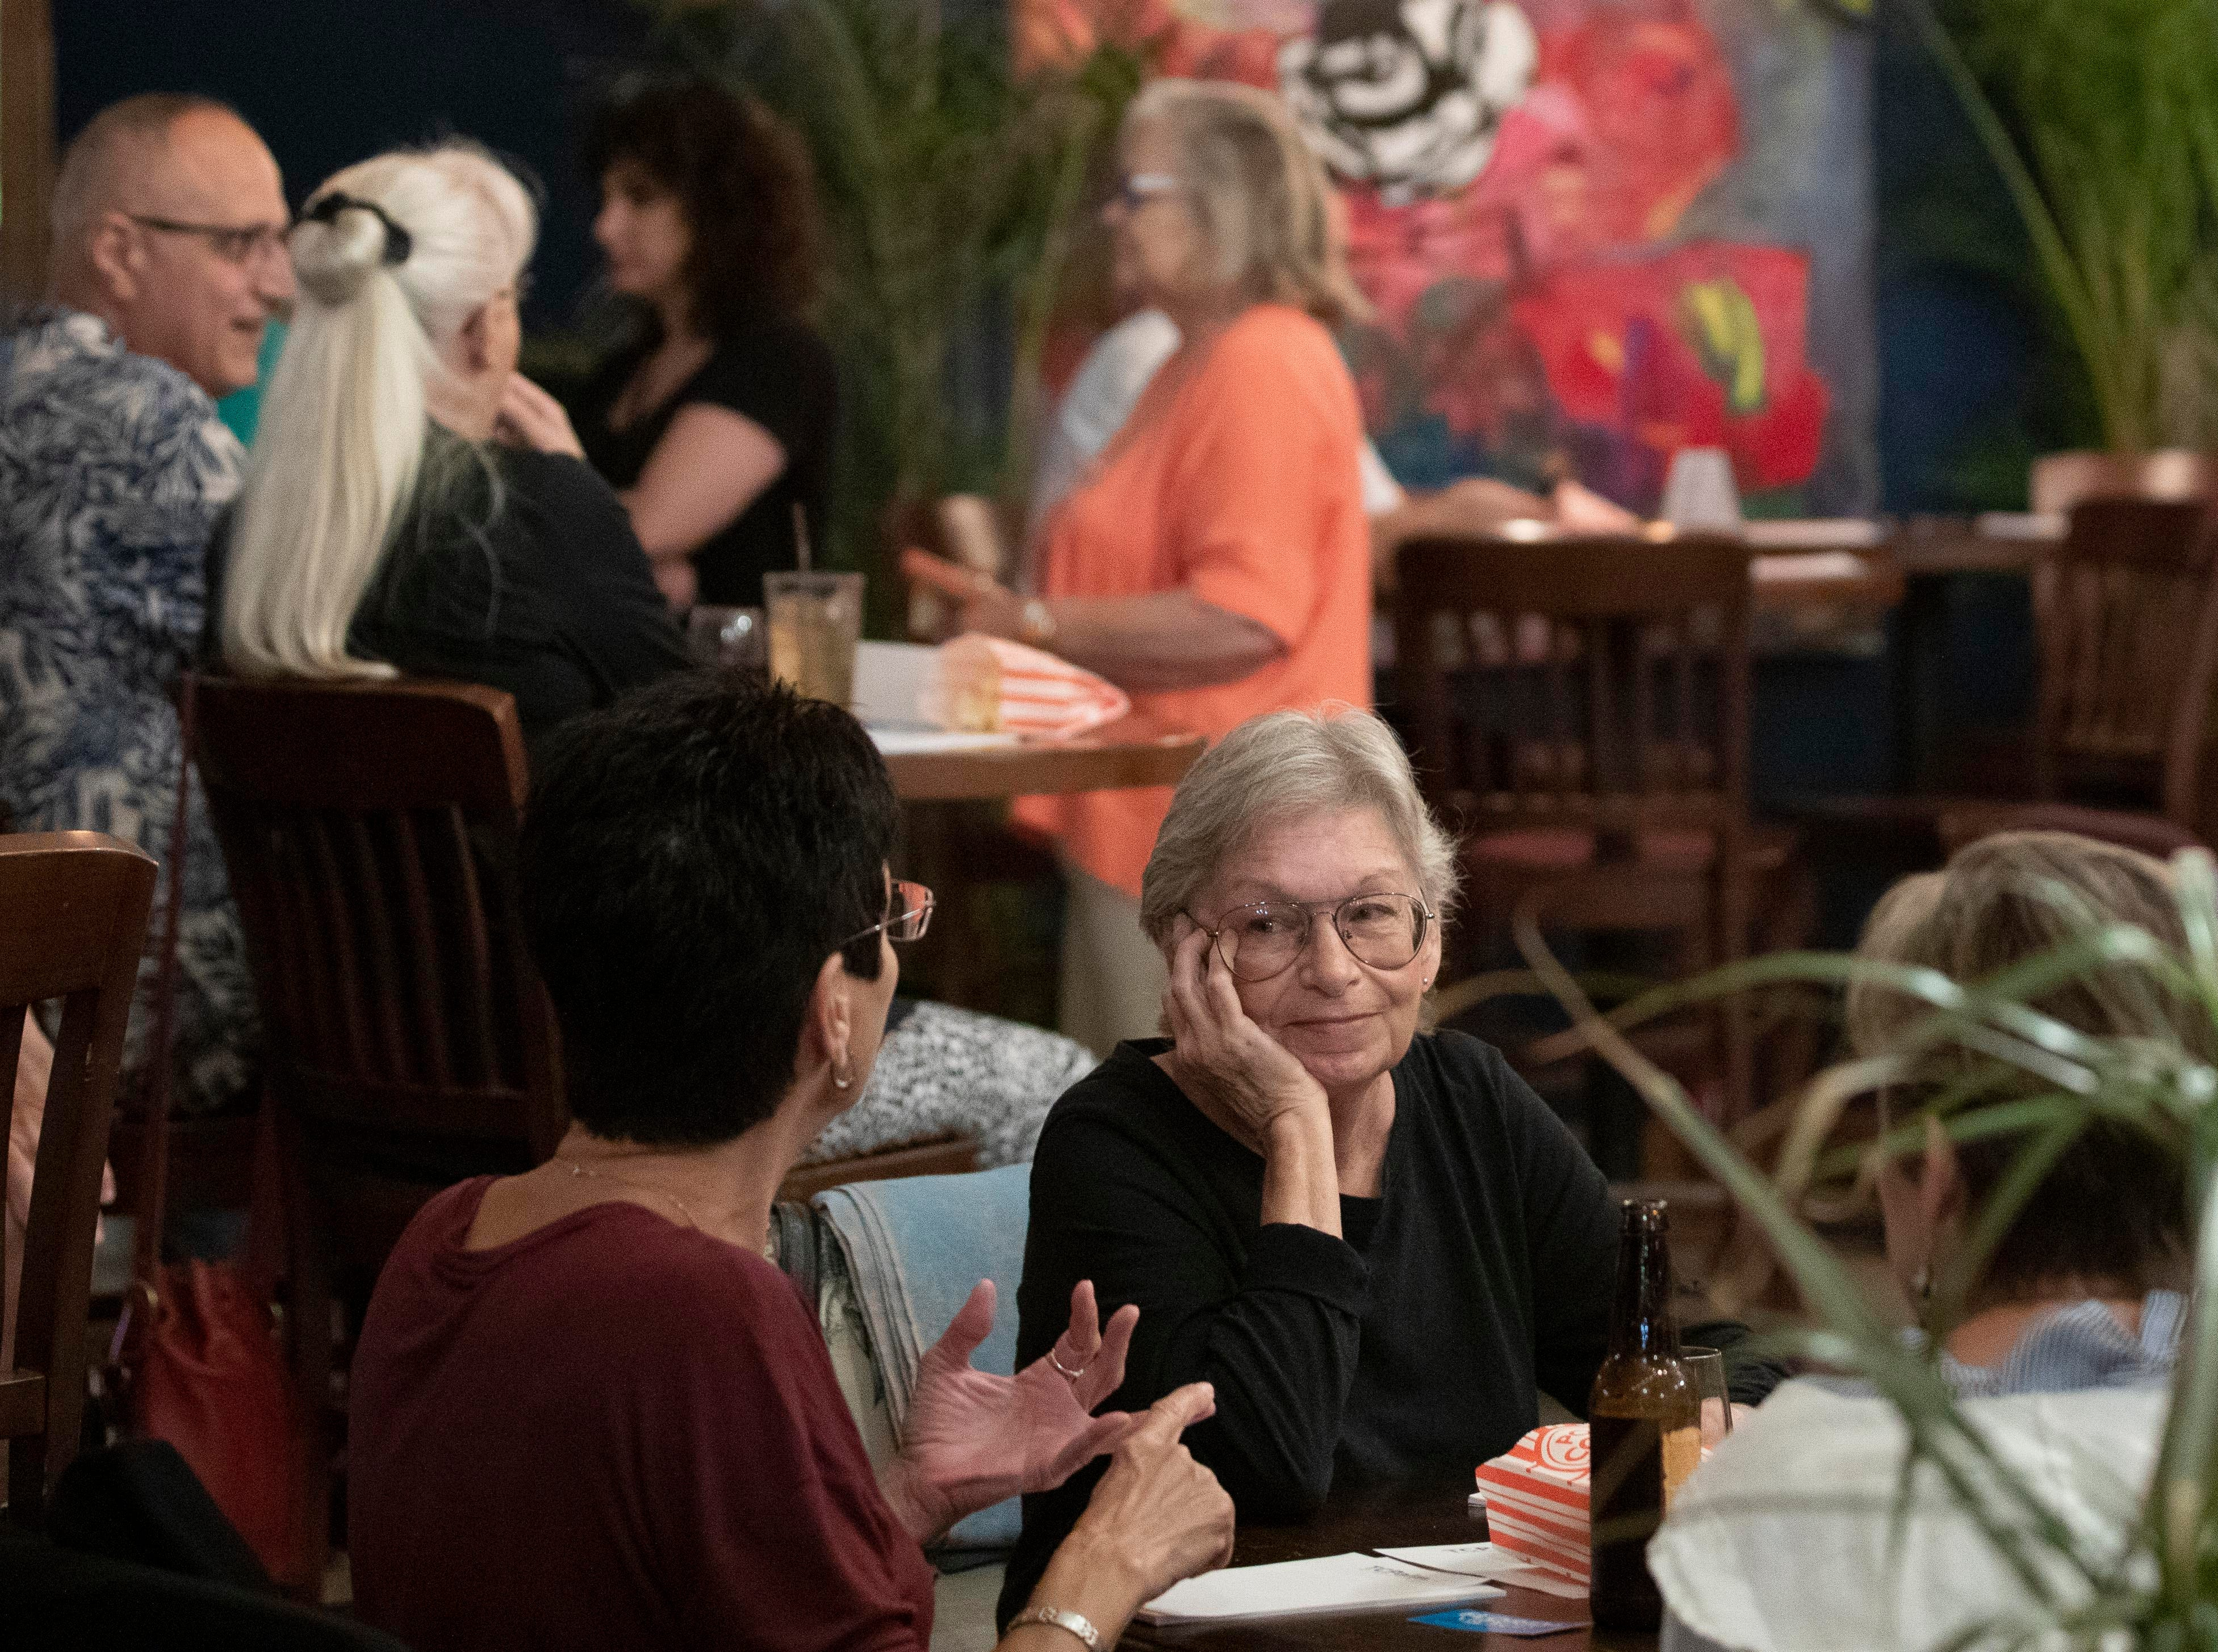 """TCPalm held their inaugural Documentary & Drinks event on Tuesday, Feb. 12, 2019, at Ground Floor Farm in Stuart. They showed the 24-minute film, """"A State in Transition,"""" which grew out of TCPalm's Florida Voices project. Visuals journalist Leah Voss and opinion/audience engagement editor Eve Samples interviewed 22 Floridians from across the state about what's important to them during this important time in Florida's history. The watch party included time for questions and community conversation."""